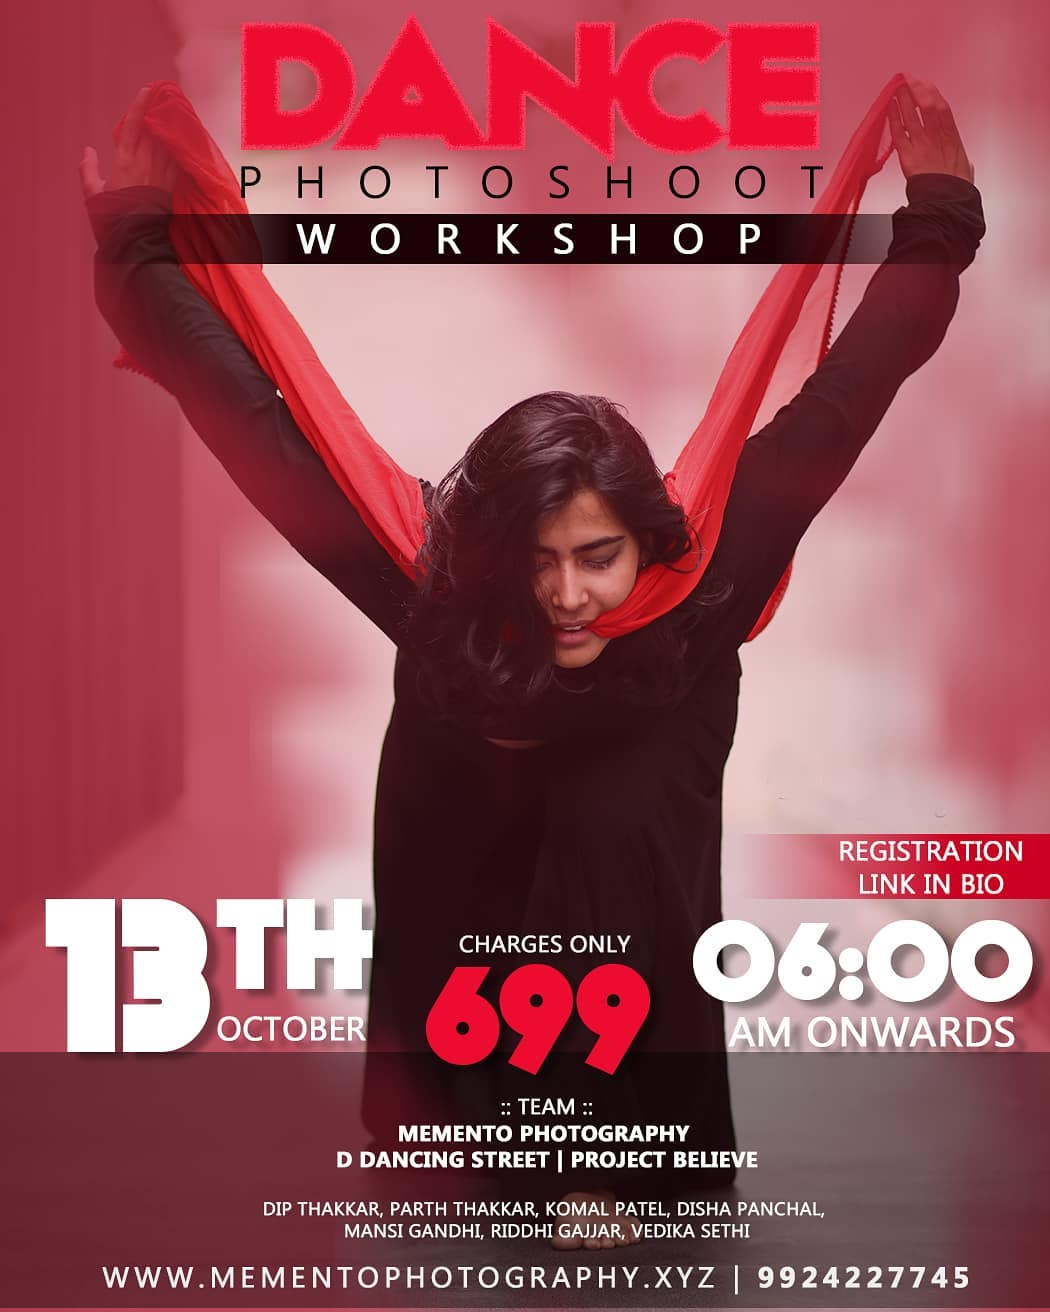 Hello Dancers & Photographers,  A Team of people with dance and photography background will be there for guiding  foot.  #Workshop will have live demonstration with dancers and photographers.  So if  you are interested, open given registration form link in Bio and fill the form.. https://forms.gle/R9hqM5vzN4m7AYTY7  Dance Photography Workshop Workshop date 13th oct,  Time 6.00am - 11.00am.. 100% Prior to workshop meetup.  Thank you Team :  Mememto Photography |  D Dancing Street | Project Believe | Disha Bridal Studio  Contact 9924227745 for any queries.  First time dance photography workshop in ahmedabad.. #dancephotographer #dancephotographyworkshop #ahmedabad #amdavadi #amdavad #dancephotography #dancers #photographer #dancephoto #workshop #9924227745 #dipmementophotography #ddancingstreet #projectbelieve #streetshoot  #streetconceptshoot #conceptshoot #conceptphotoshoot #ahmedabad #exploreahmedabad #dslrofficial  #dance #photooftheday  #dancerslife  #bestoftheday #danceshoot  #indiaportraits #indiaphotoproject #conceptworkshop #keepdancing